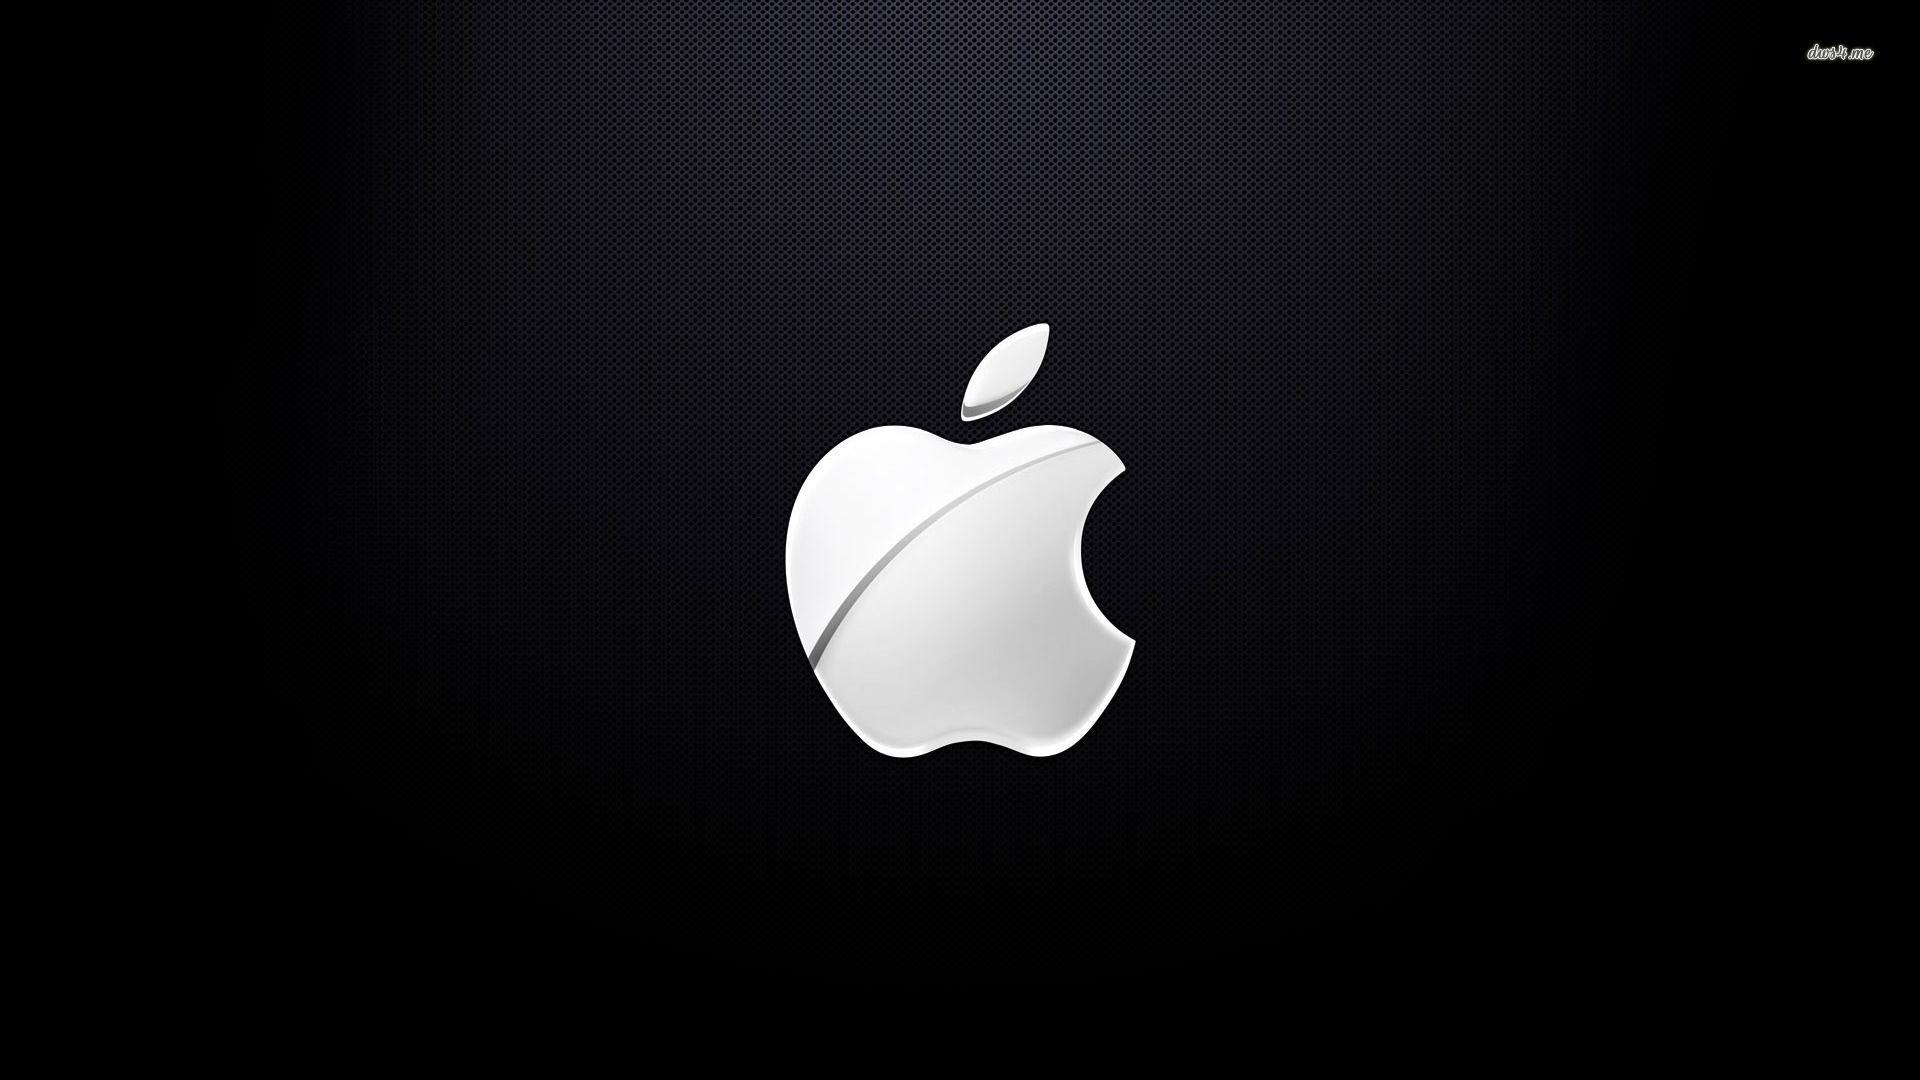 Apple Logo Pictures Black and White HD Wallpapers of Black and White